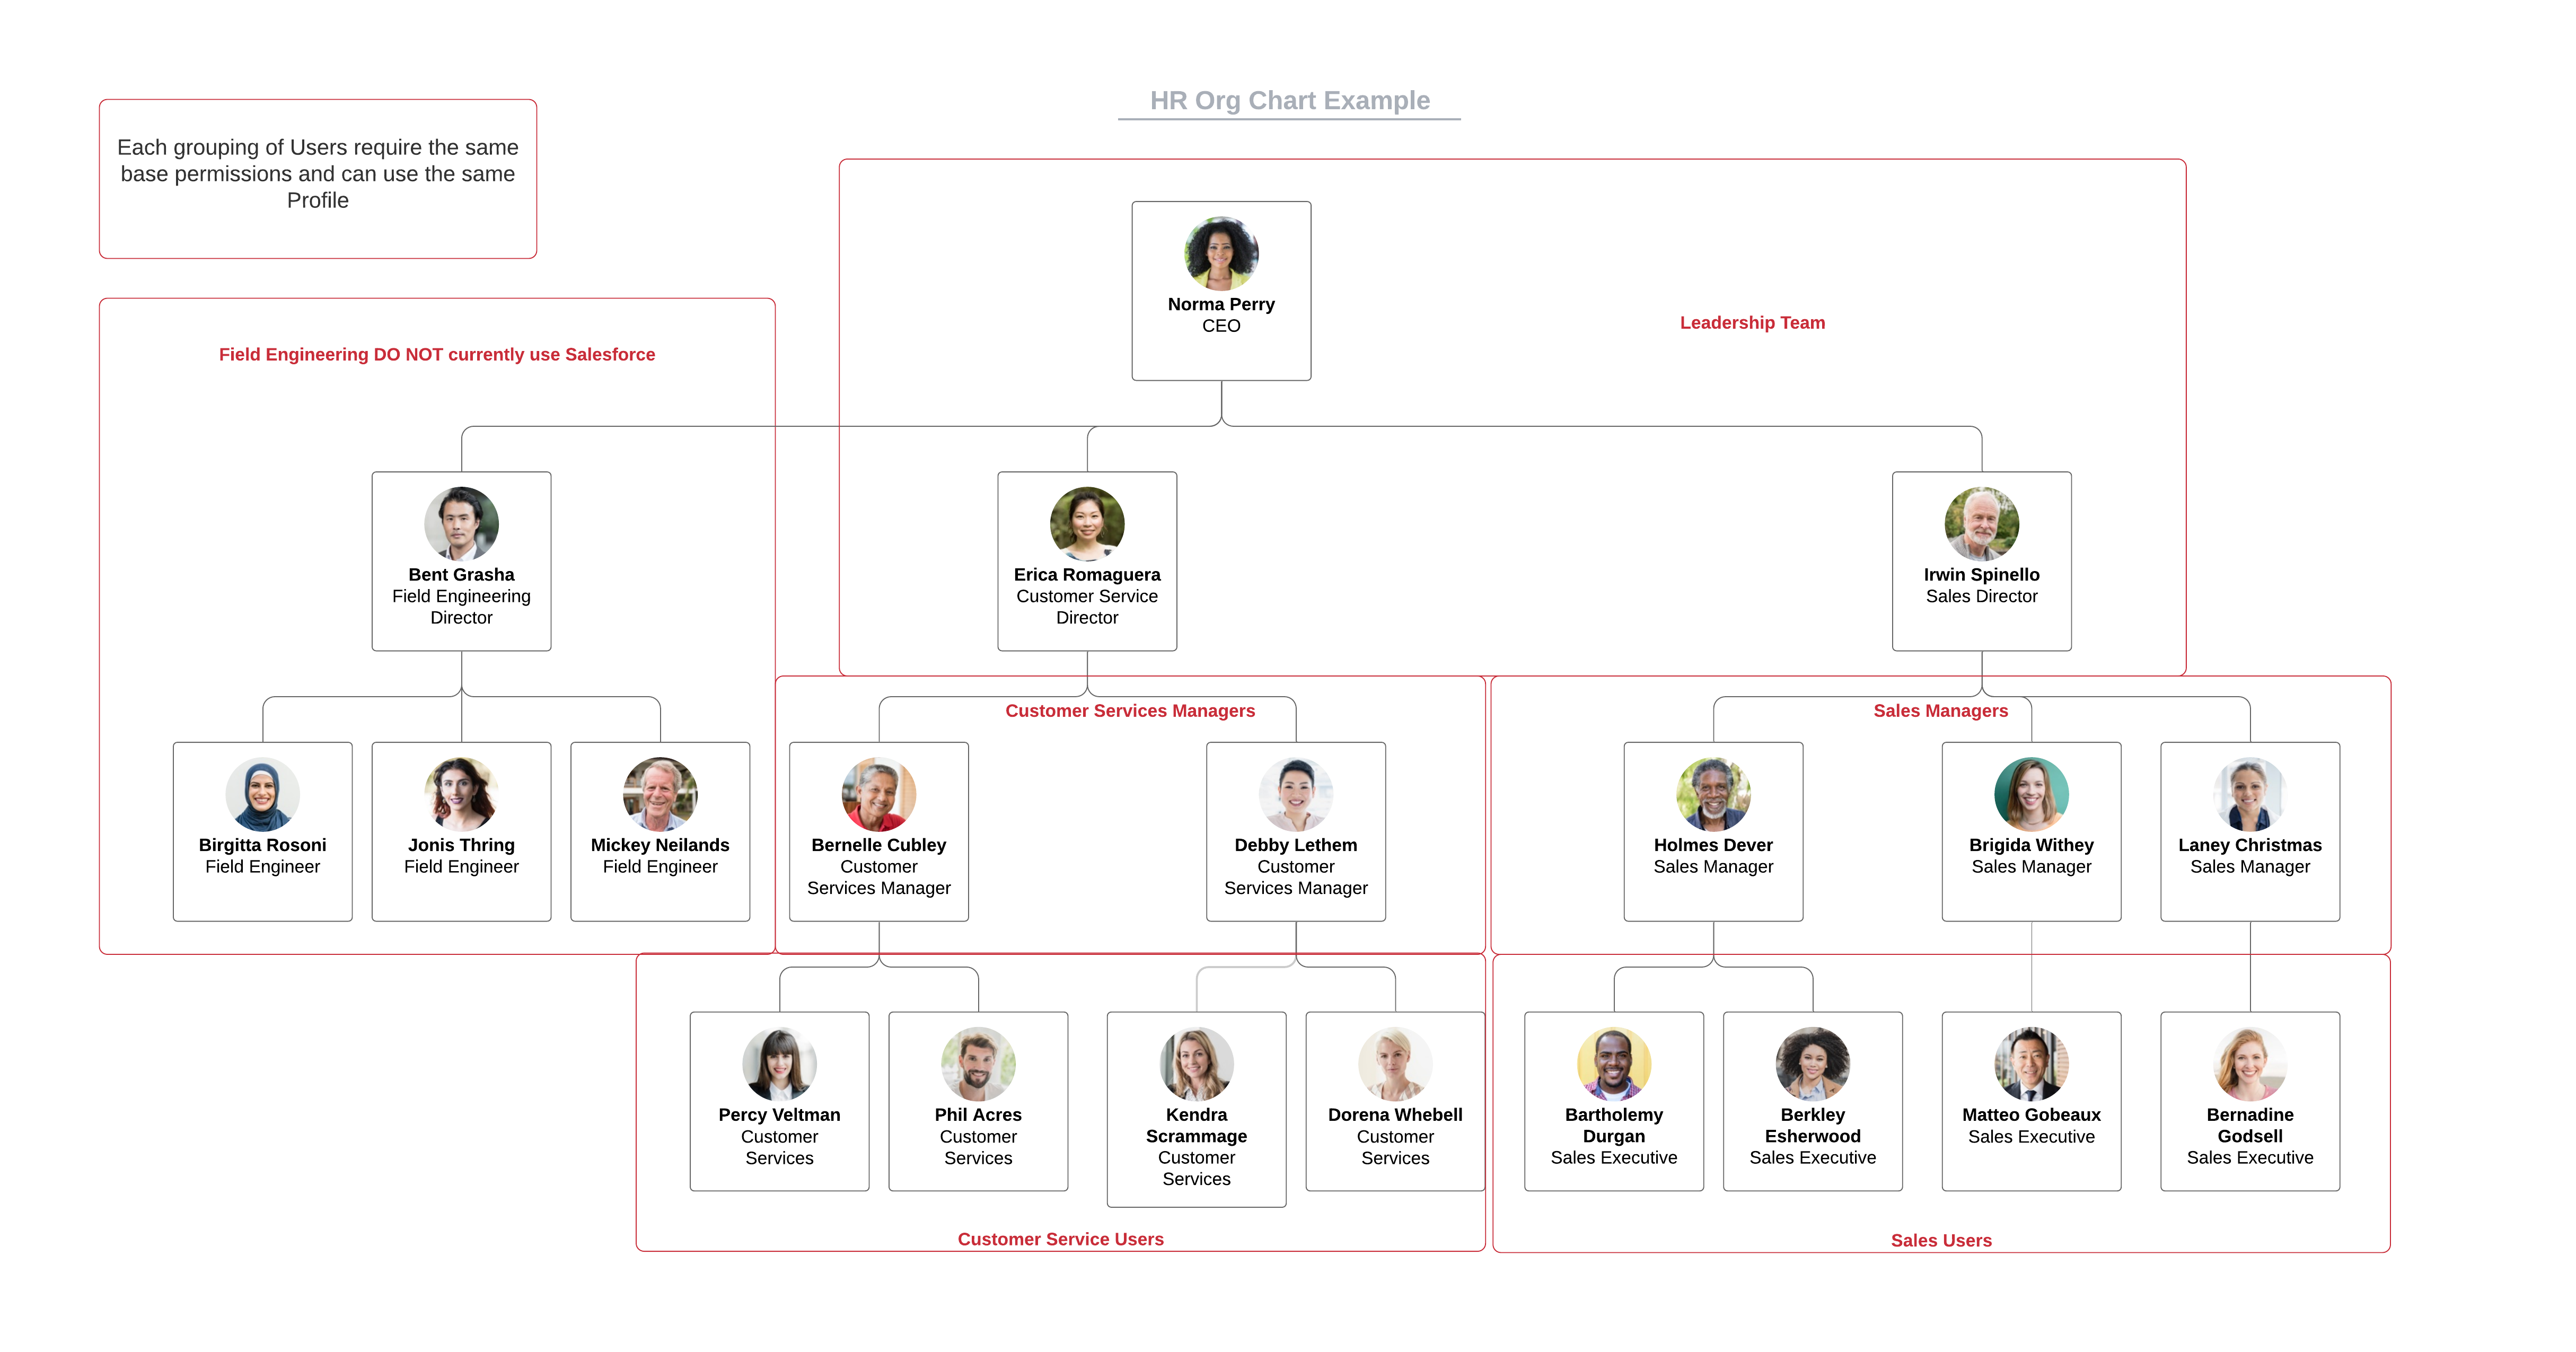 HR Org Chart Example using Profiles